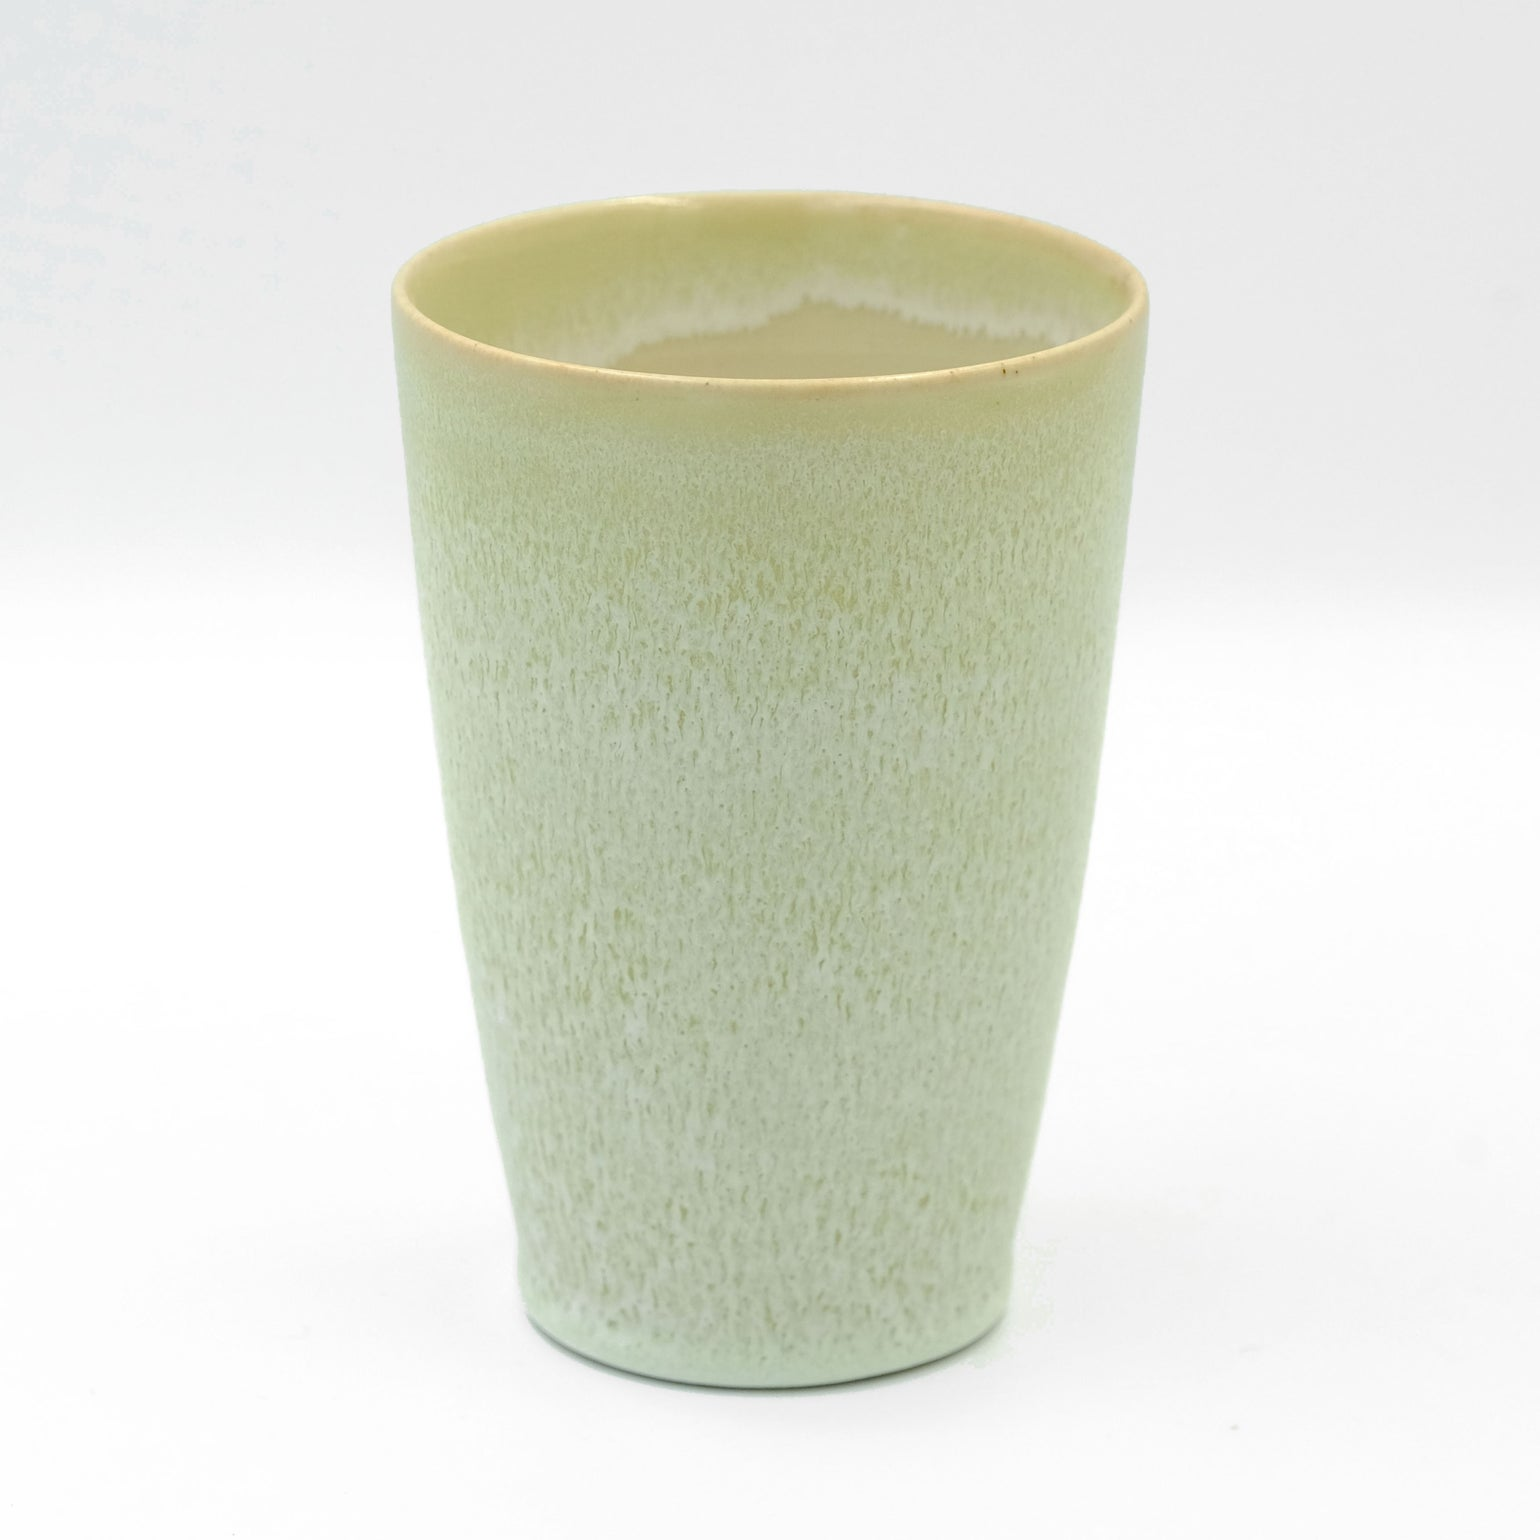 Image of UNIKA CUP FORREST GREEN